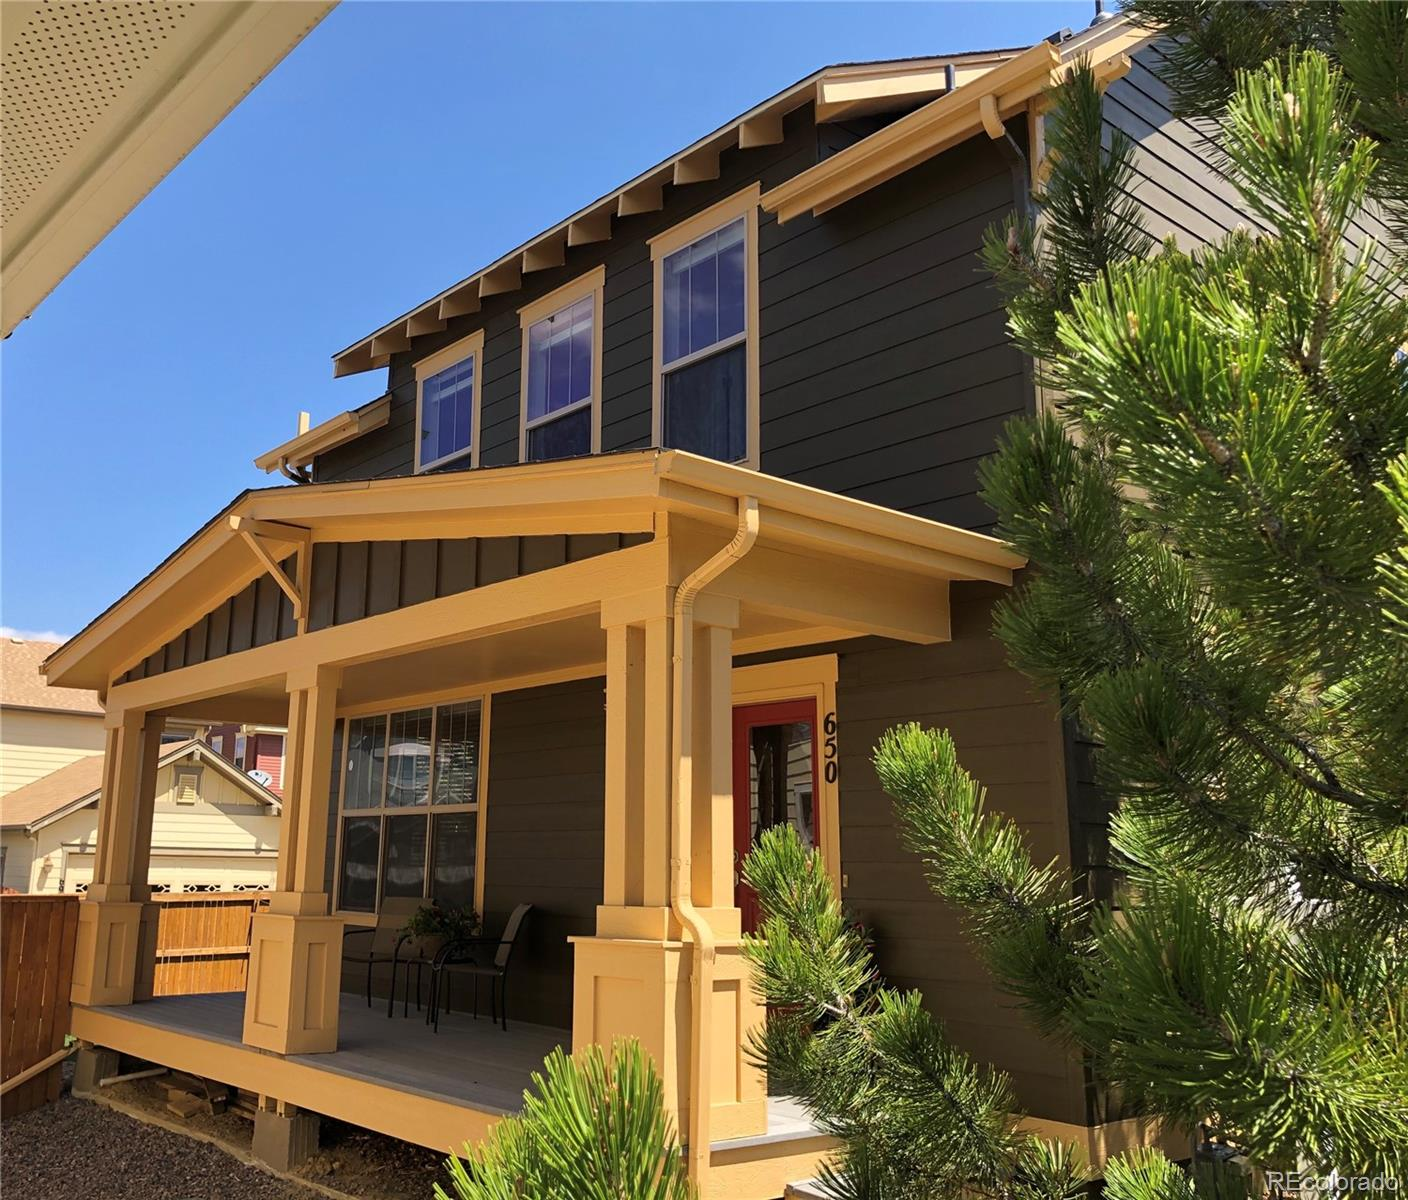 MLS# 3732250 - 2 - 650 Homestead Street, Lafayette, CO 80026